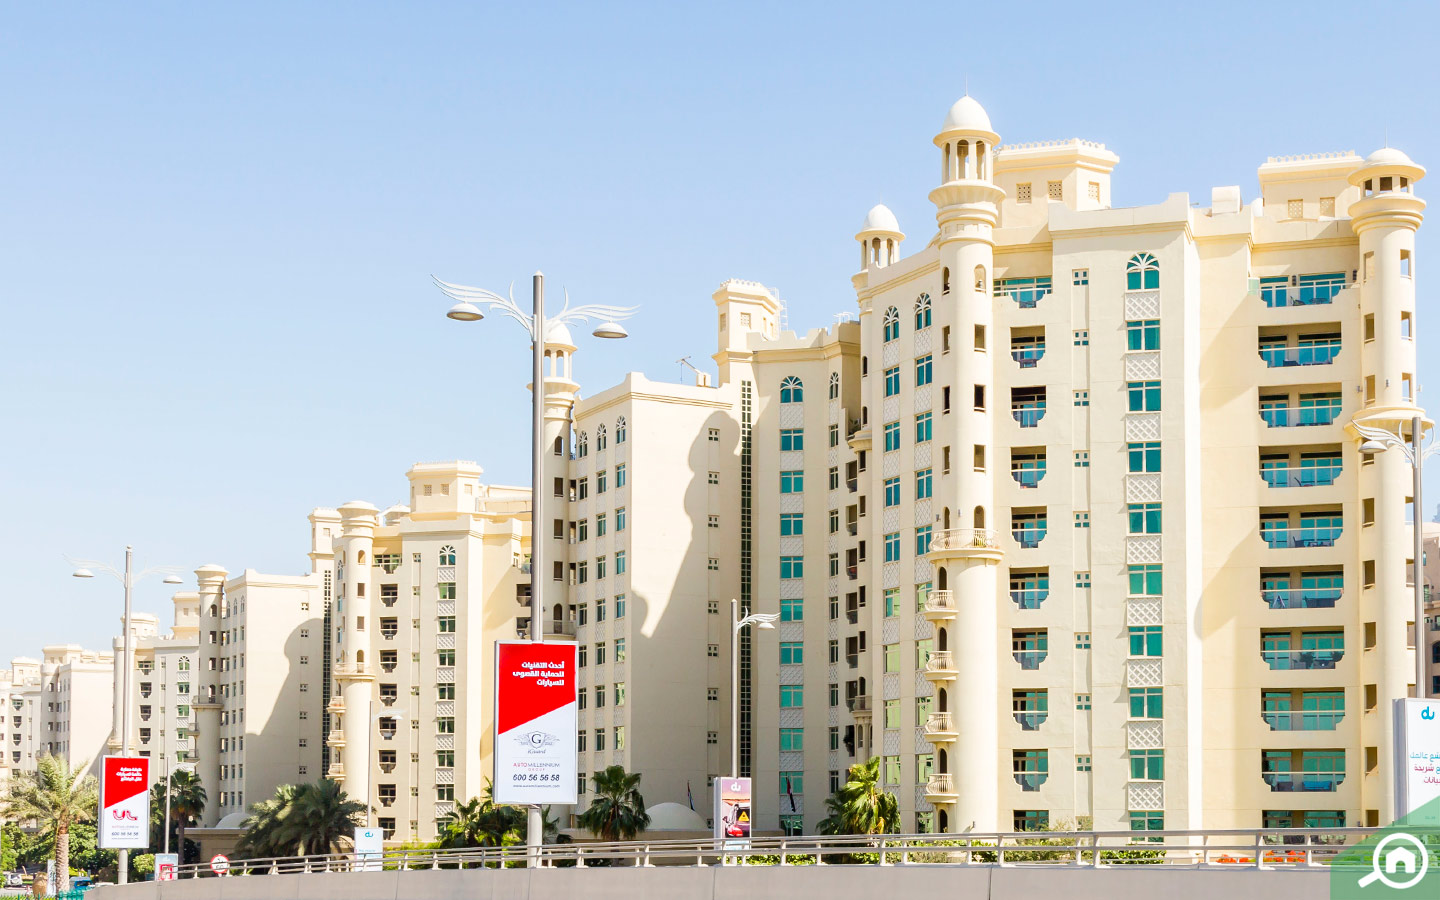 Palm Jumeirah is still very popular for investing in Dubai.